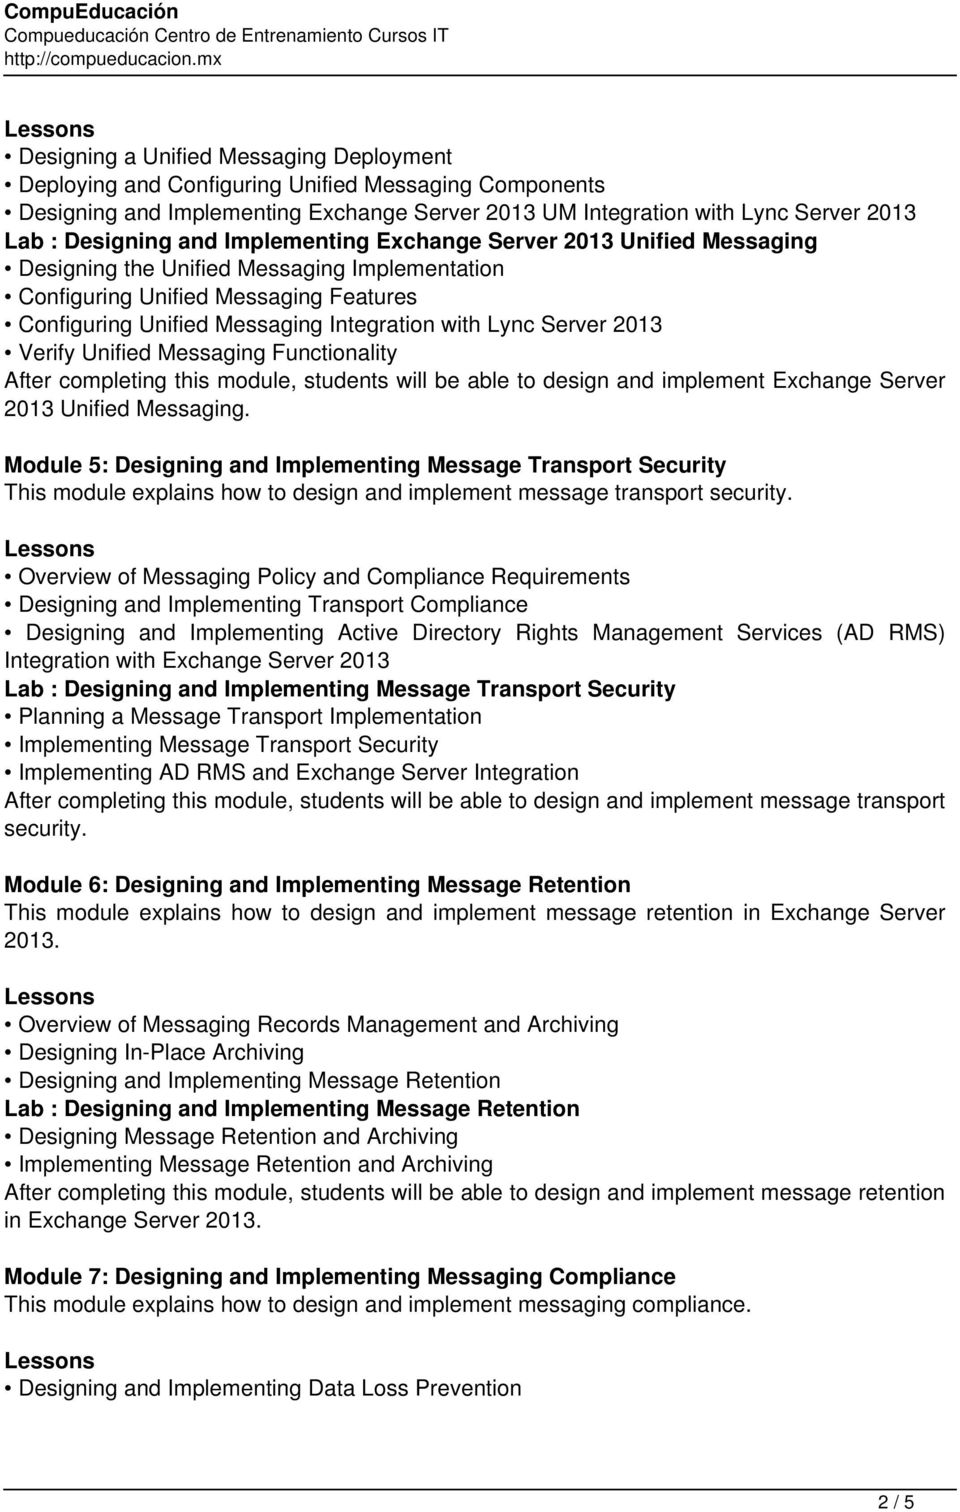 Server 2013 Verify Unified Messaging Functionality After completing this module, students will be able to design and implement Exchange Server 2013 Unified Messaging.